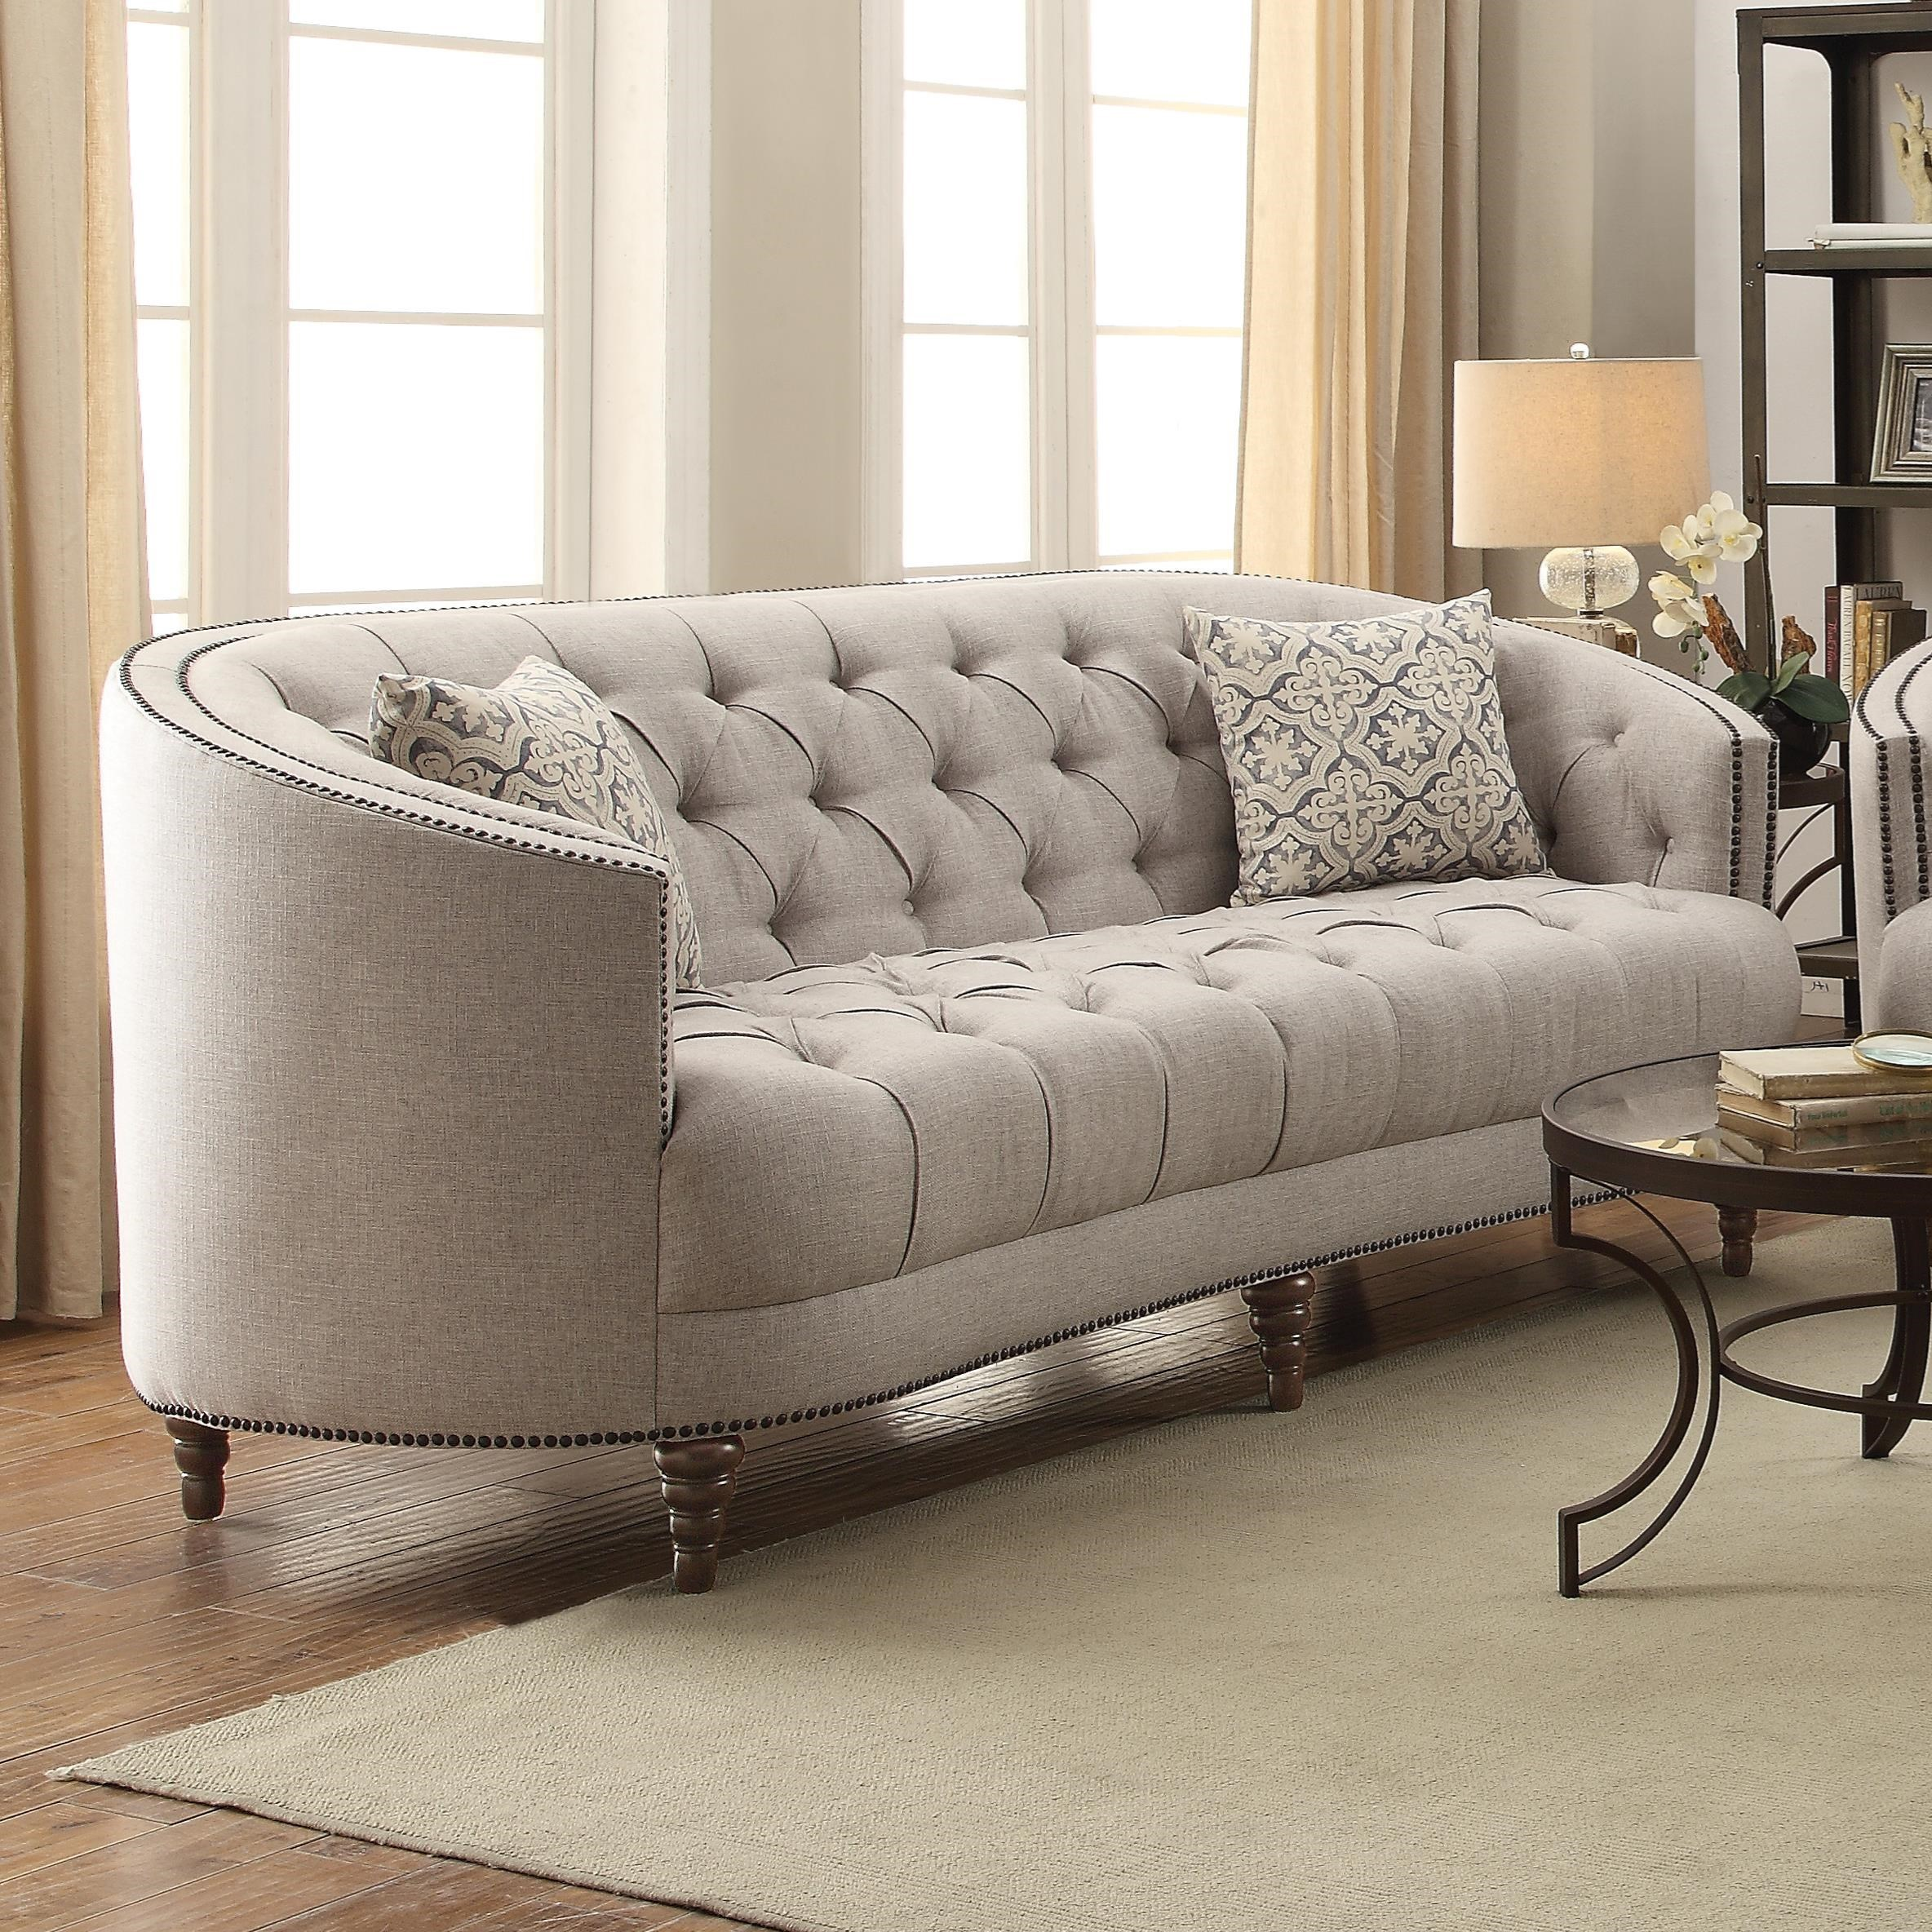 Avonlea Sofa by Coaster at Beds N Stuff